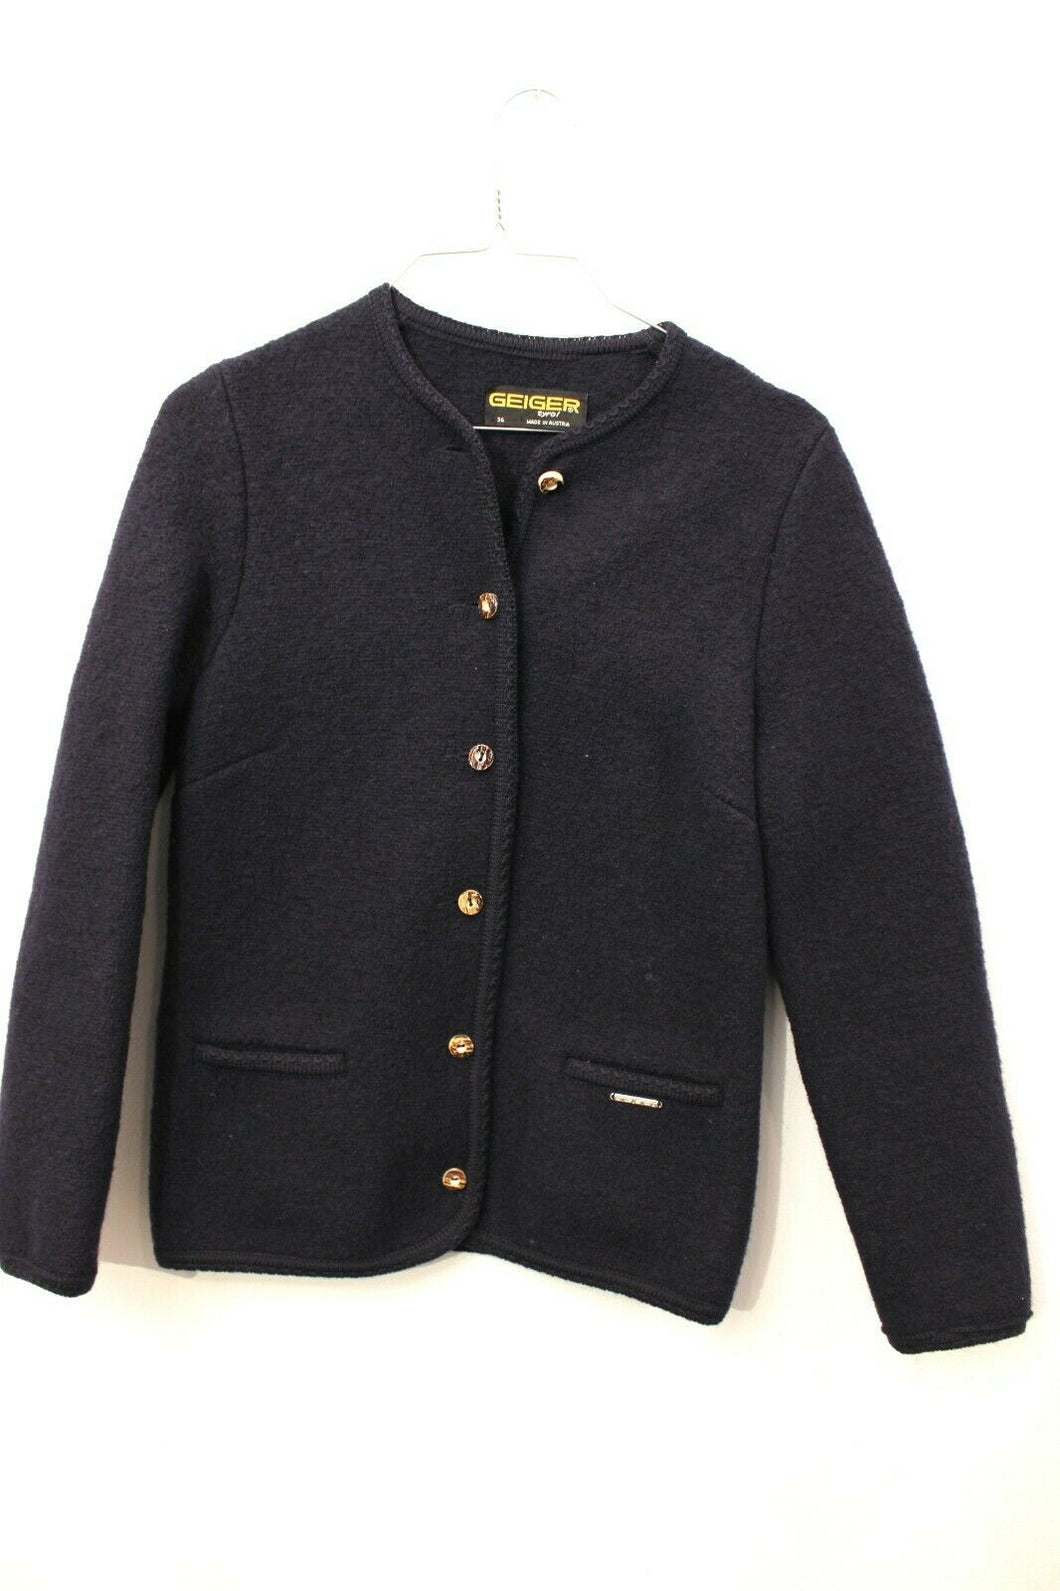 Geiger Tyrol Navy Cardigan Jacket in a Marked Size 36